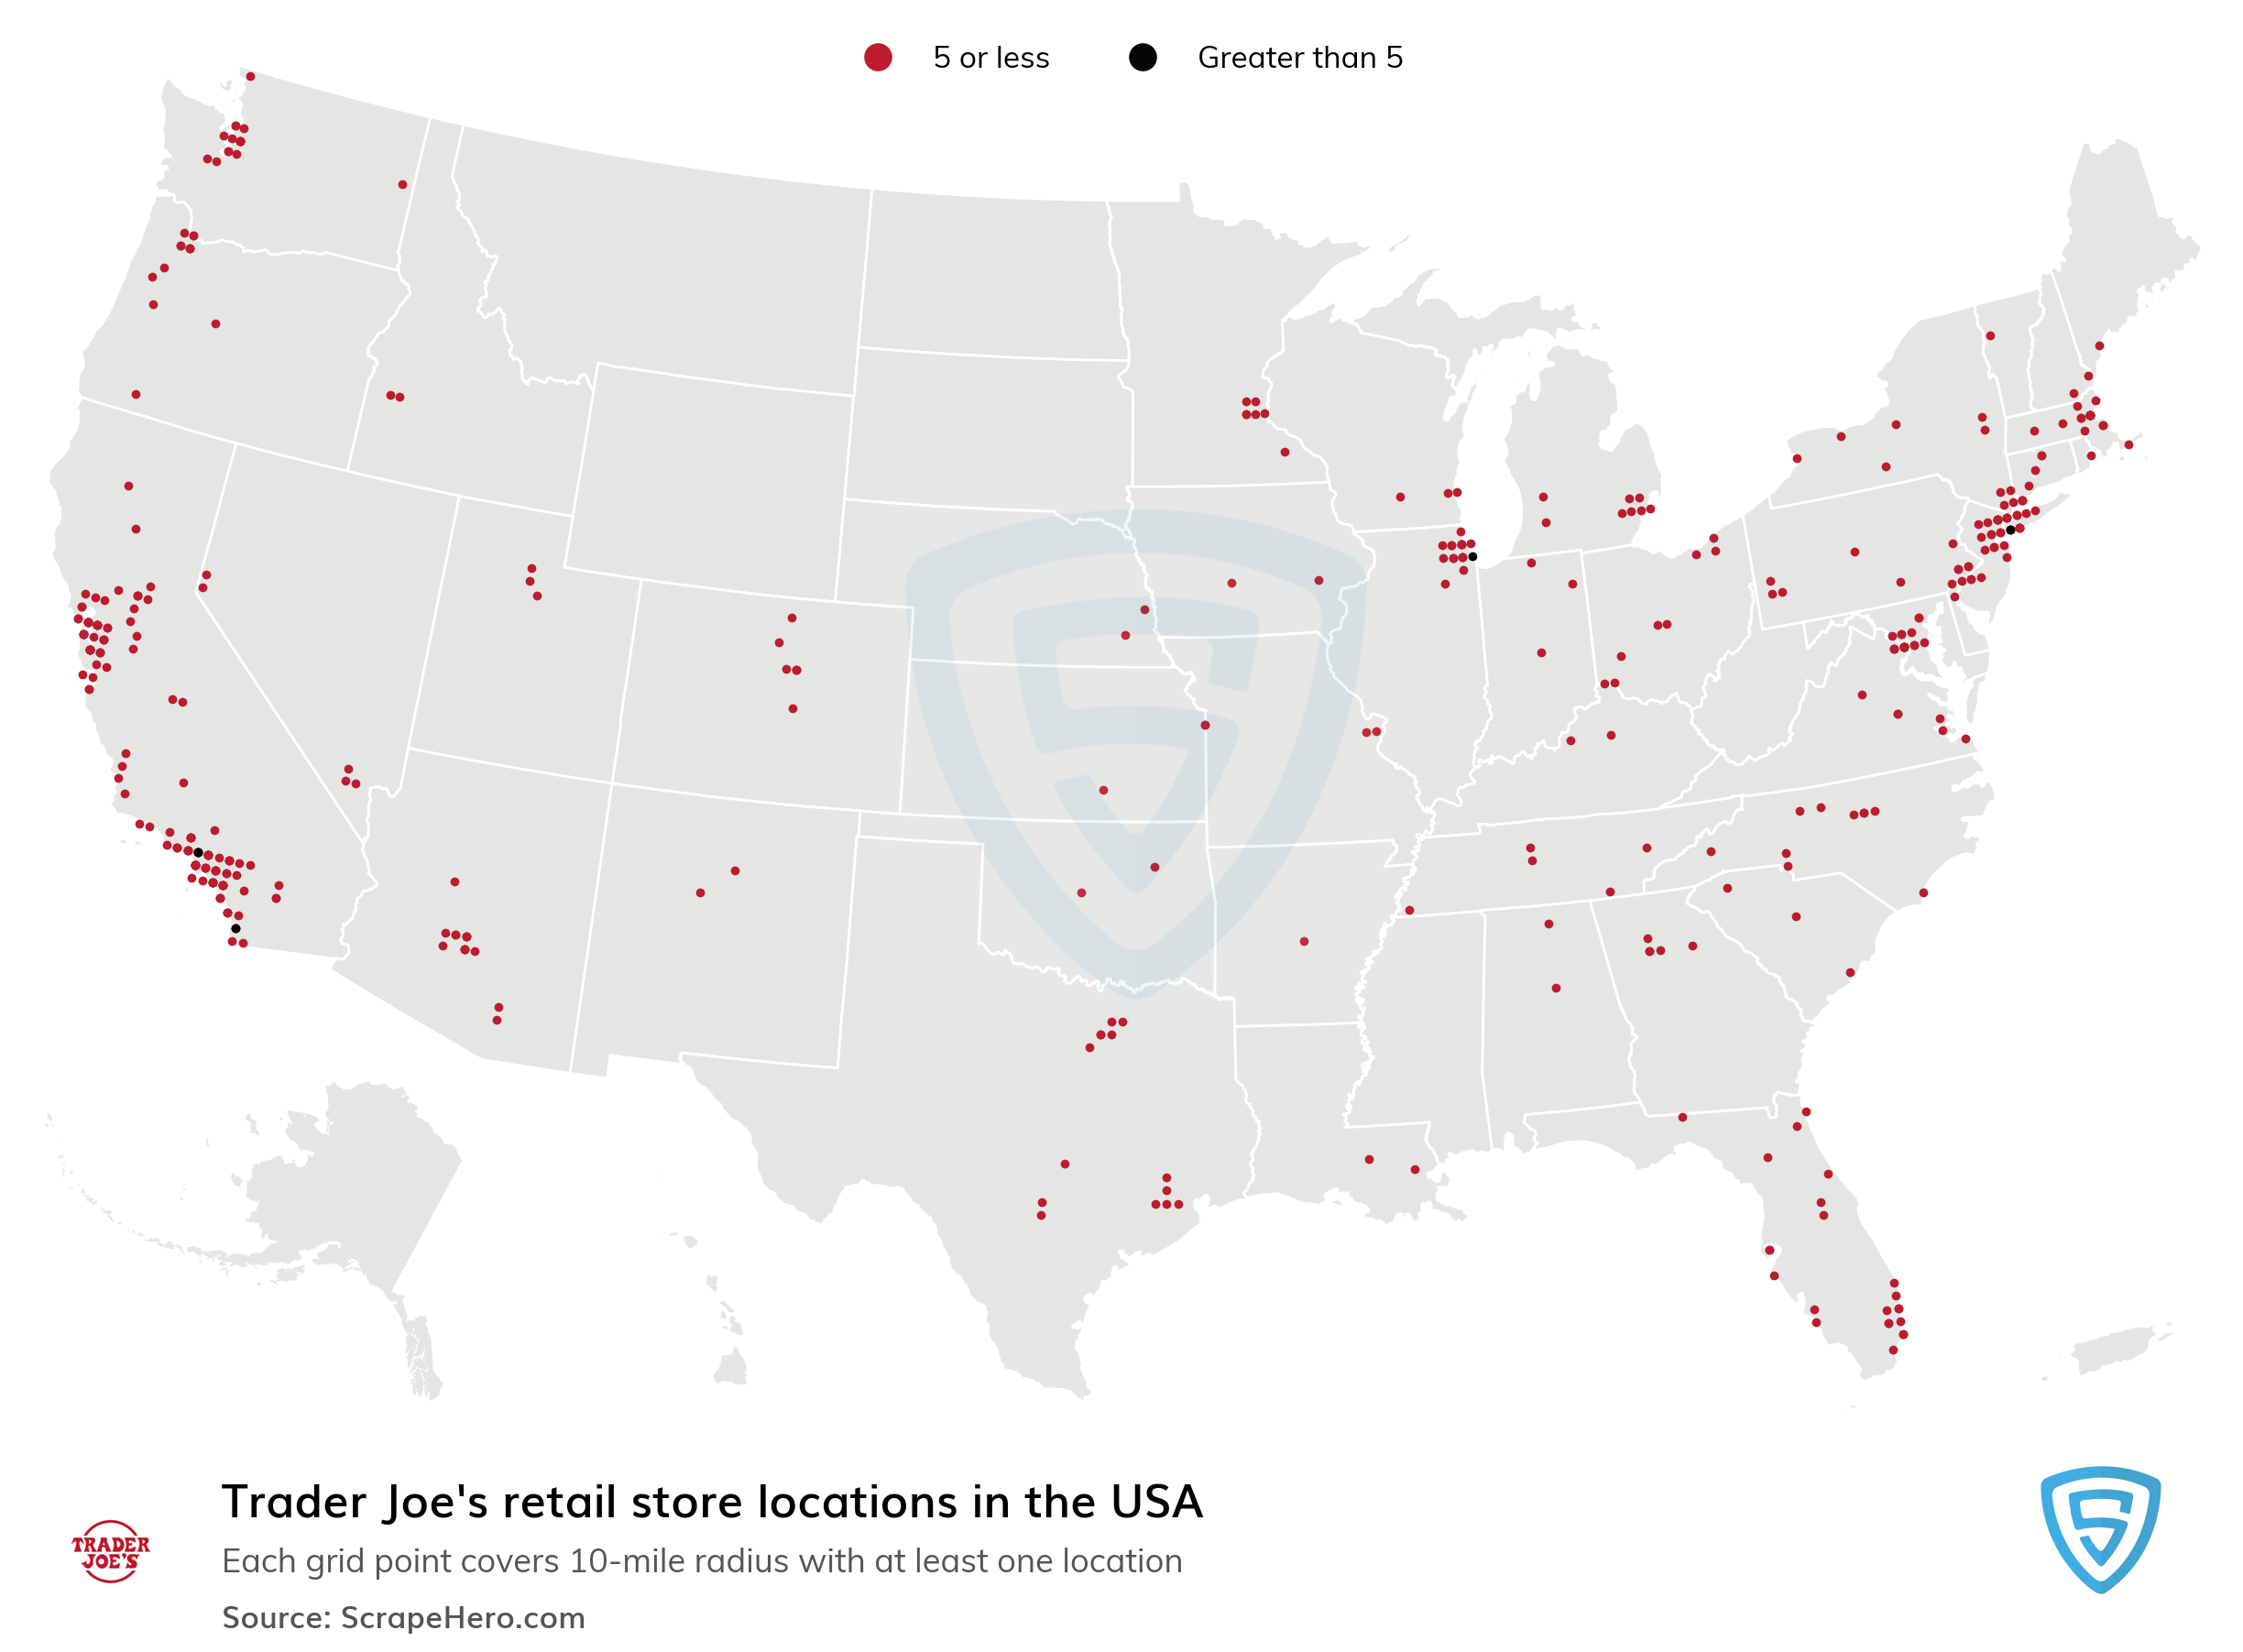 Trader Joe's Store Locations in the USA on map of cargill locations, map of chick-fil-a locations, map of whole foods market locations, map of winco foods locations, map of bass pro shops locations, map of citibank locations, map of lifetime fitness locations, map of nasa locations, map of fairway market locations, map of food lion locations, map of qfc locations, map of 7-eleven locations, map of tires plus locations, map of rite aid locations, map of outback steakhouse locations, map of family dollar locations, map of gamestop locations, map of la fitness locations, map of bank of america locations, map of sears locations,